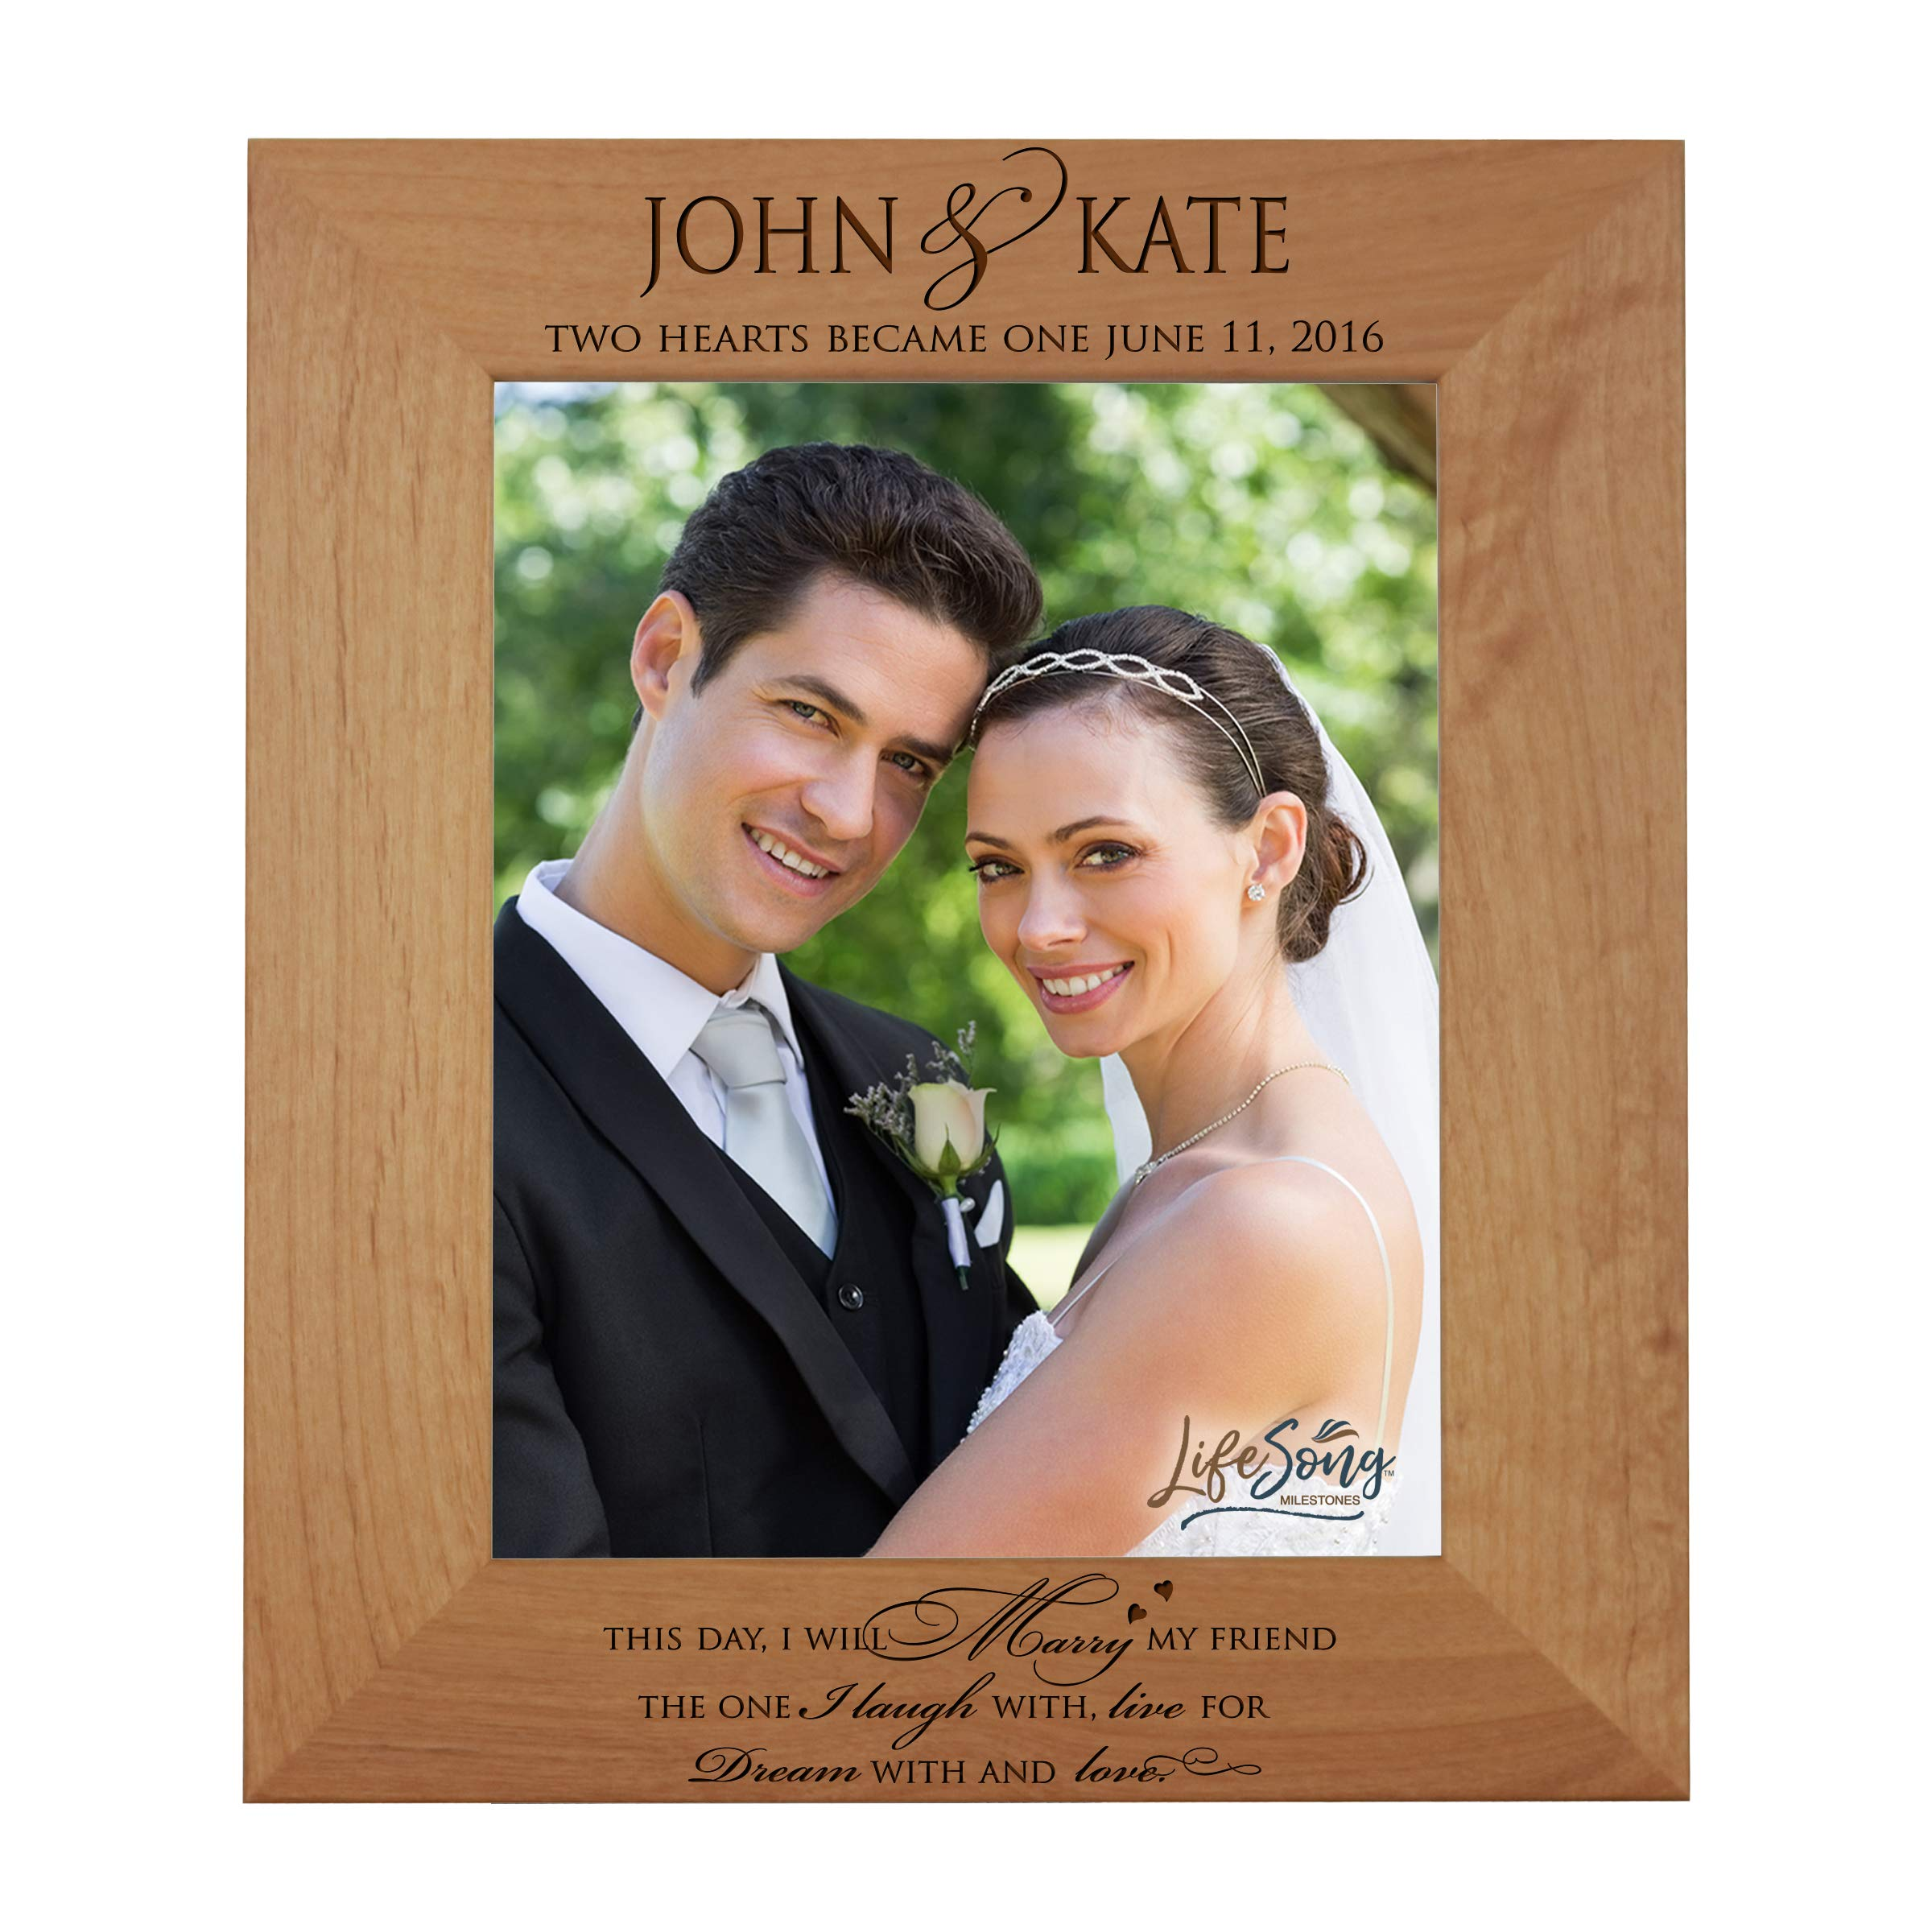 LifeSong Milestones Personalized 8x10 Picture Frame with Glass Made of Solid Wood for Wedding Anniversary or Engagement Gift for Couple Tabletop or Wall Mounting (I Will Marry)